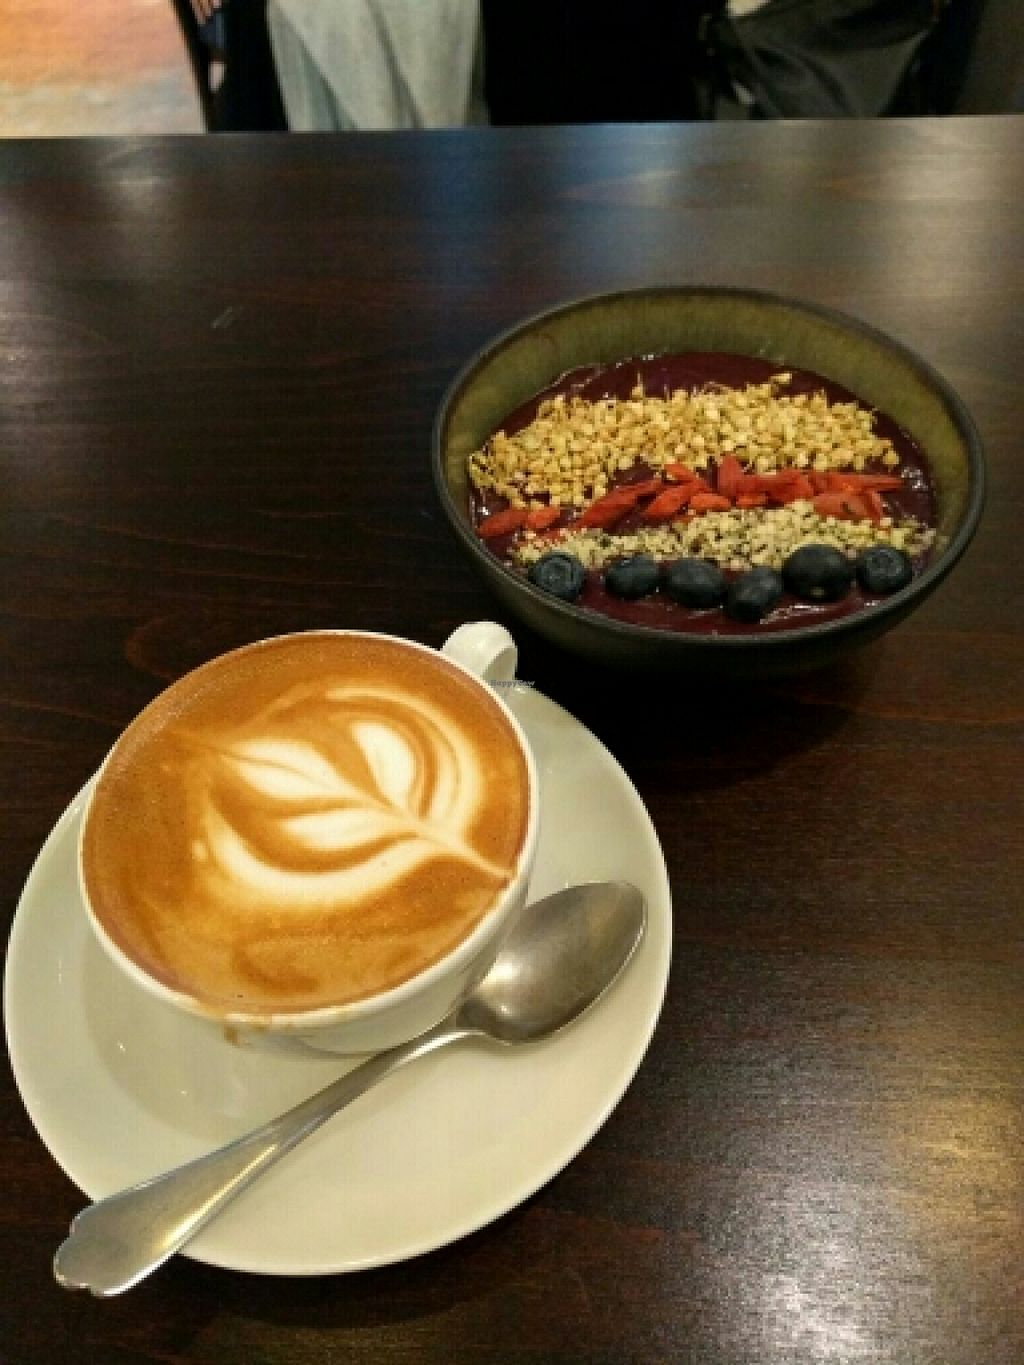 """Photo of Roots - Lintheschergasse  by <a href=""""/members/profile/Hubs"""">Hubs</a> <br/>Superfood Acai bowl & cappuccino <br/> December 22, 2015  - <a href='/contact/abuse/image/60269/129513'>Report</a>"""